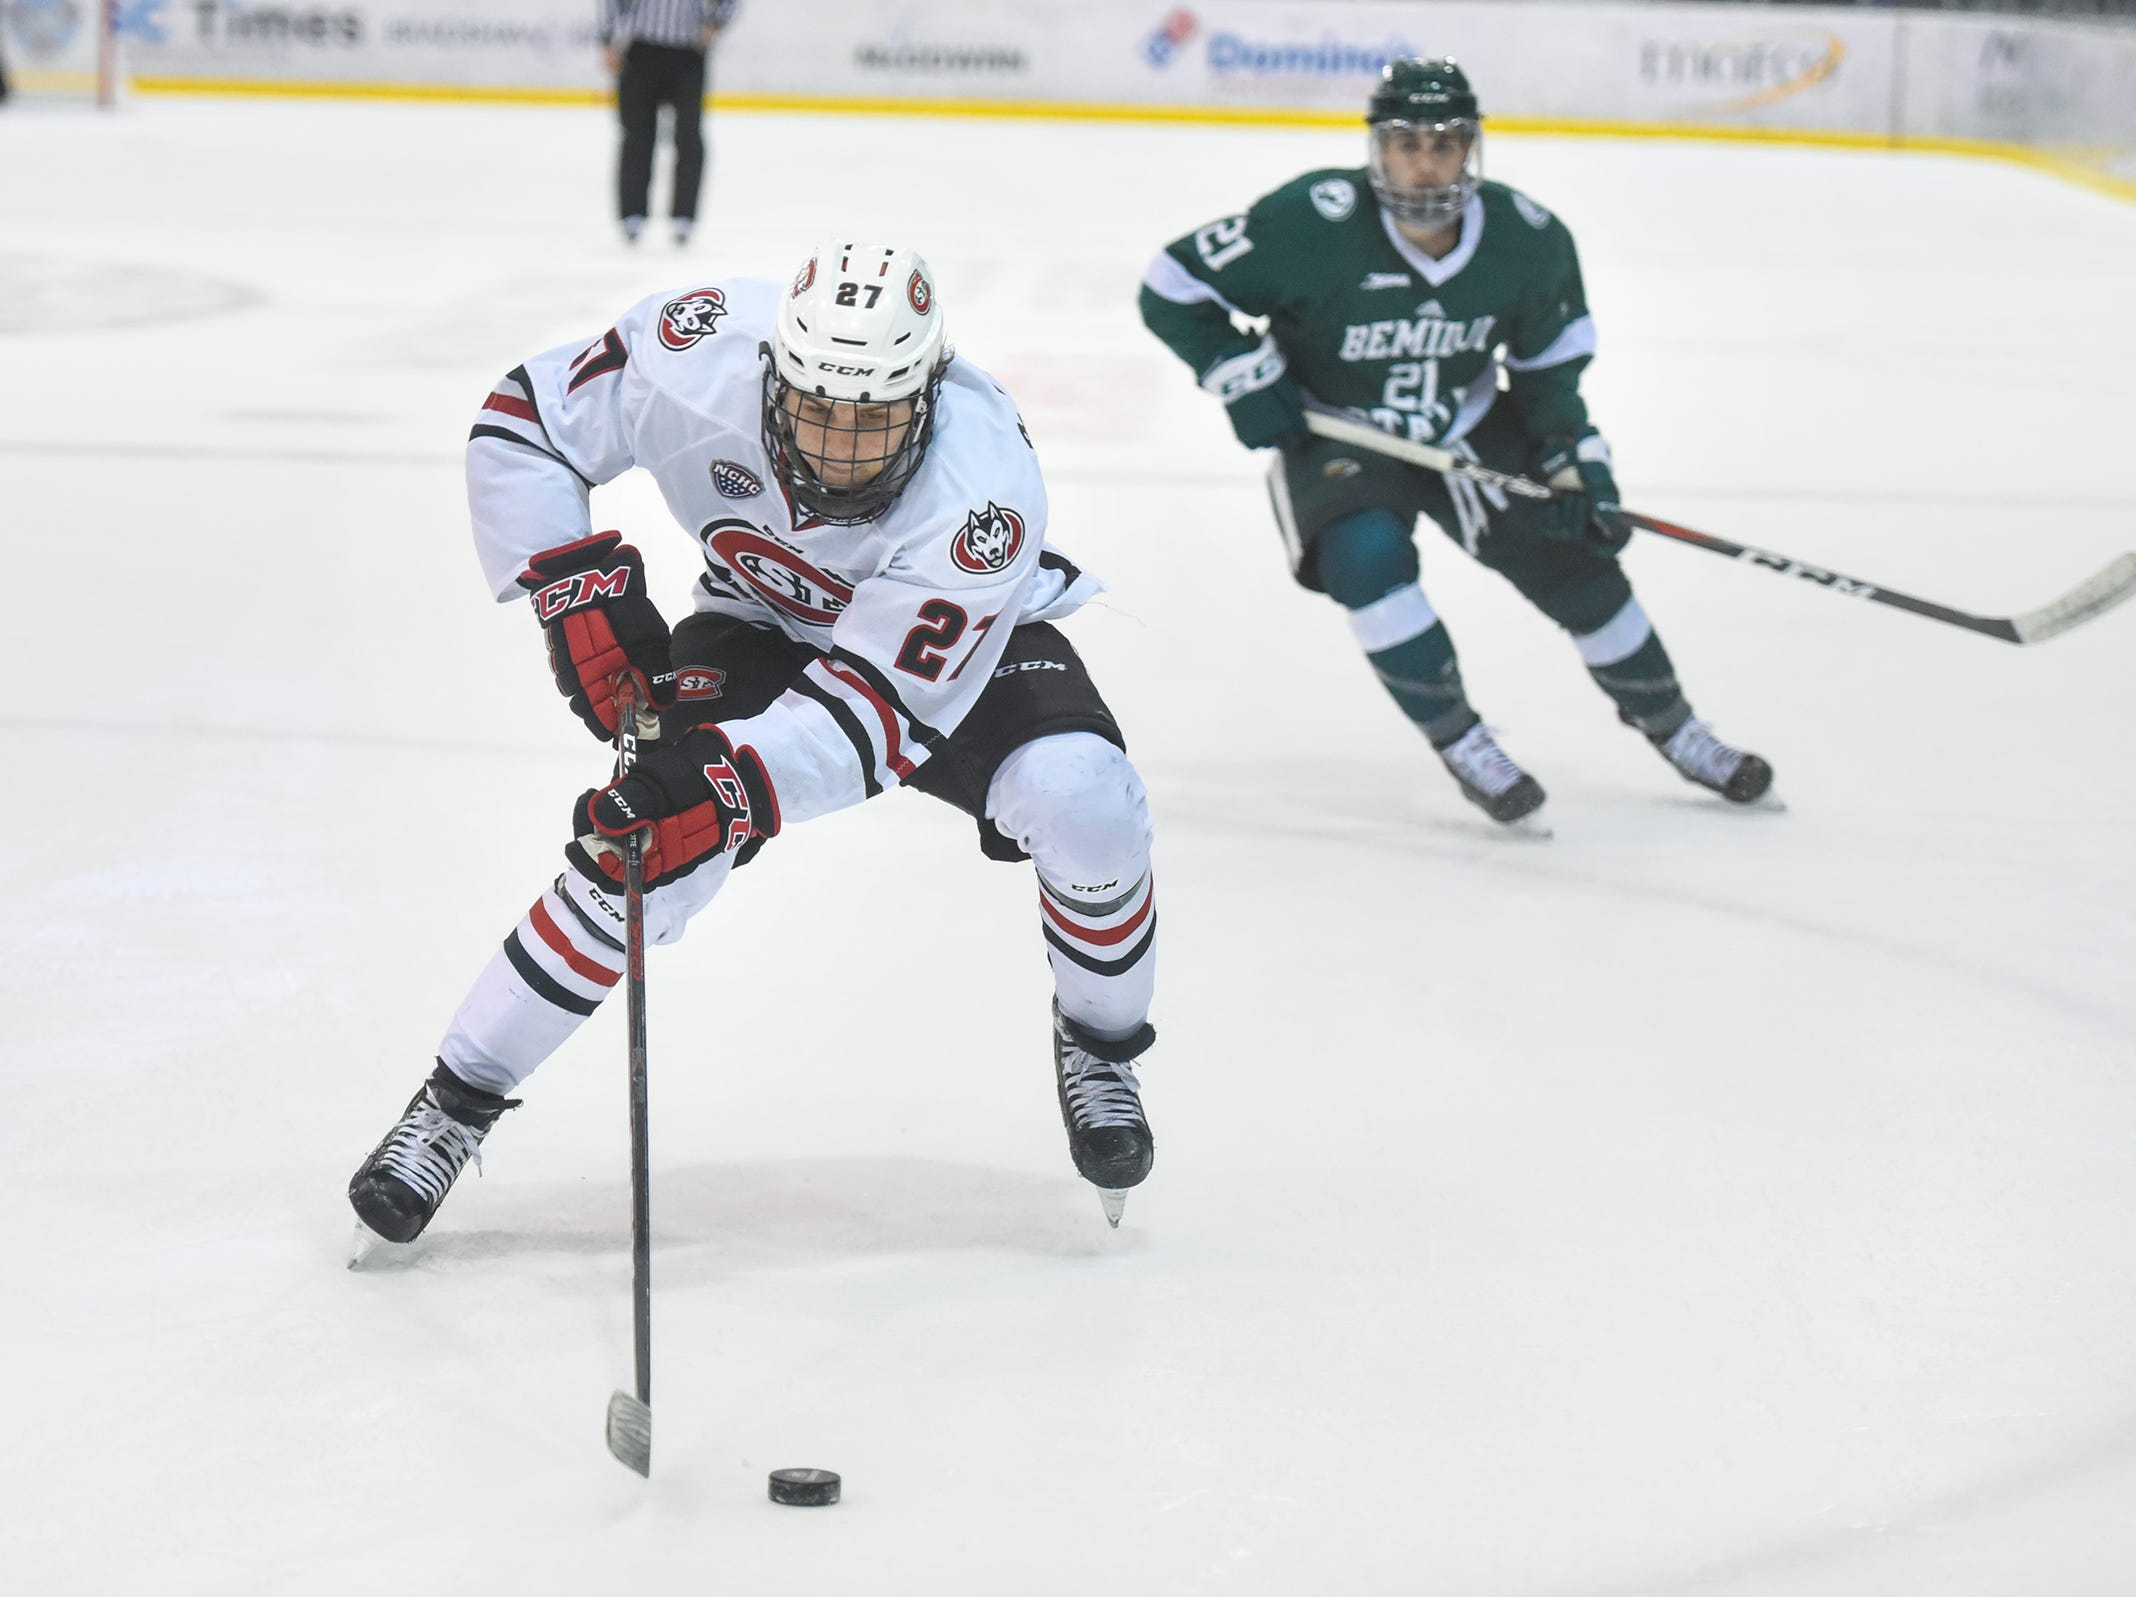 St. Cloud State's Blake Lizotte tries to control the puck in the Bemidji State zone during the first period of the Friday, Nov. 16, game at the Herb Brooks National Hockey Center in St. Cloud.